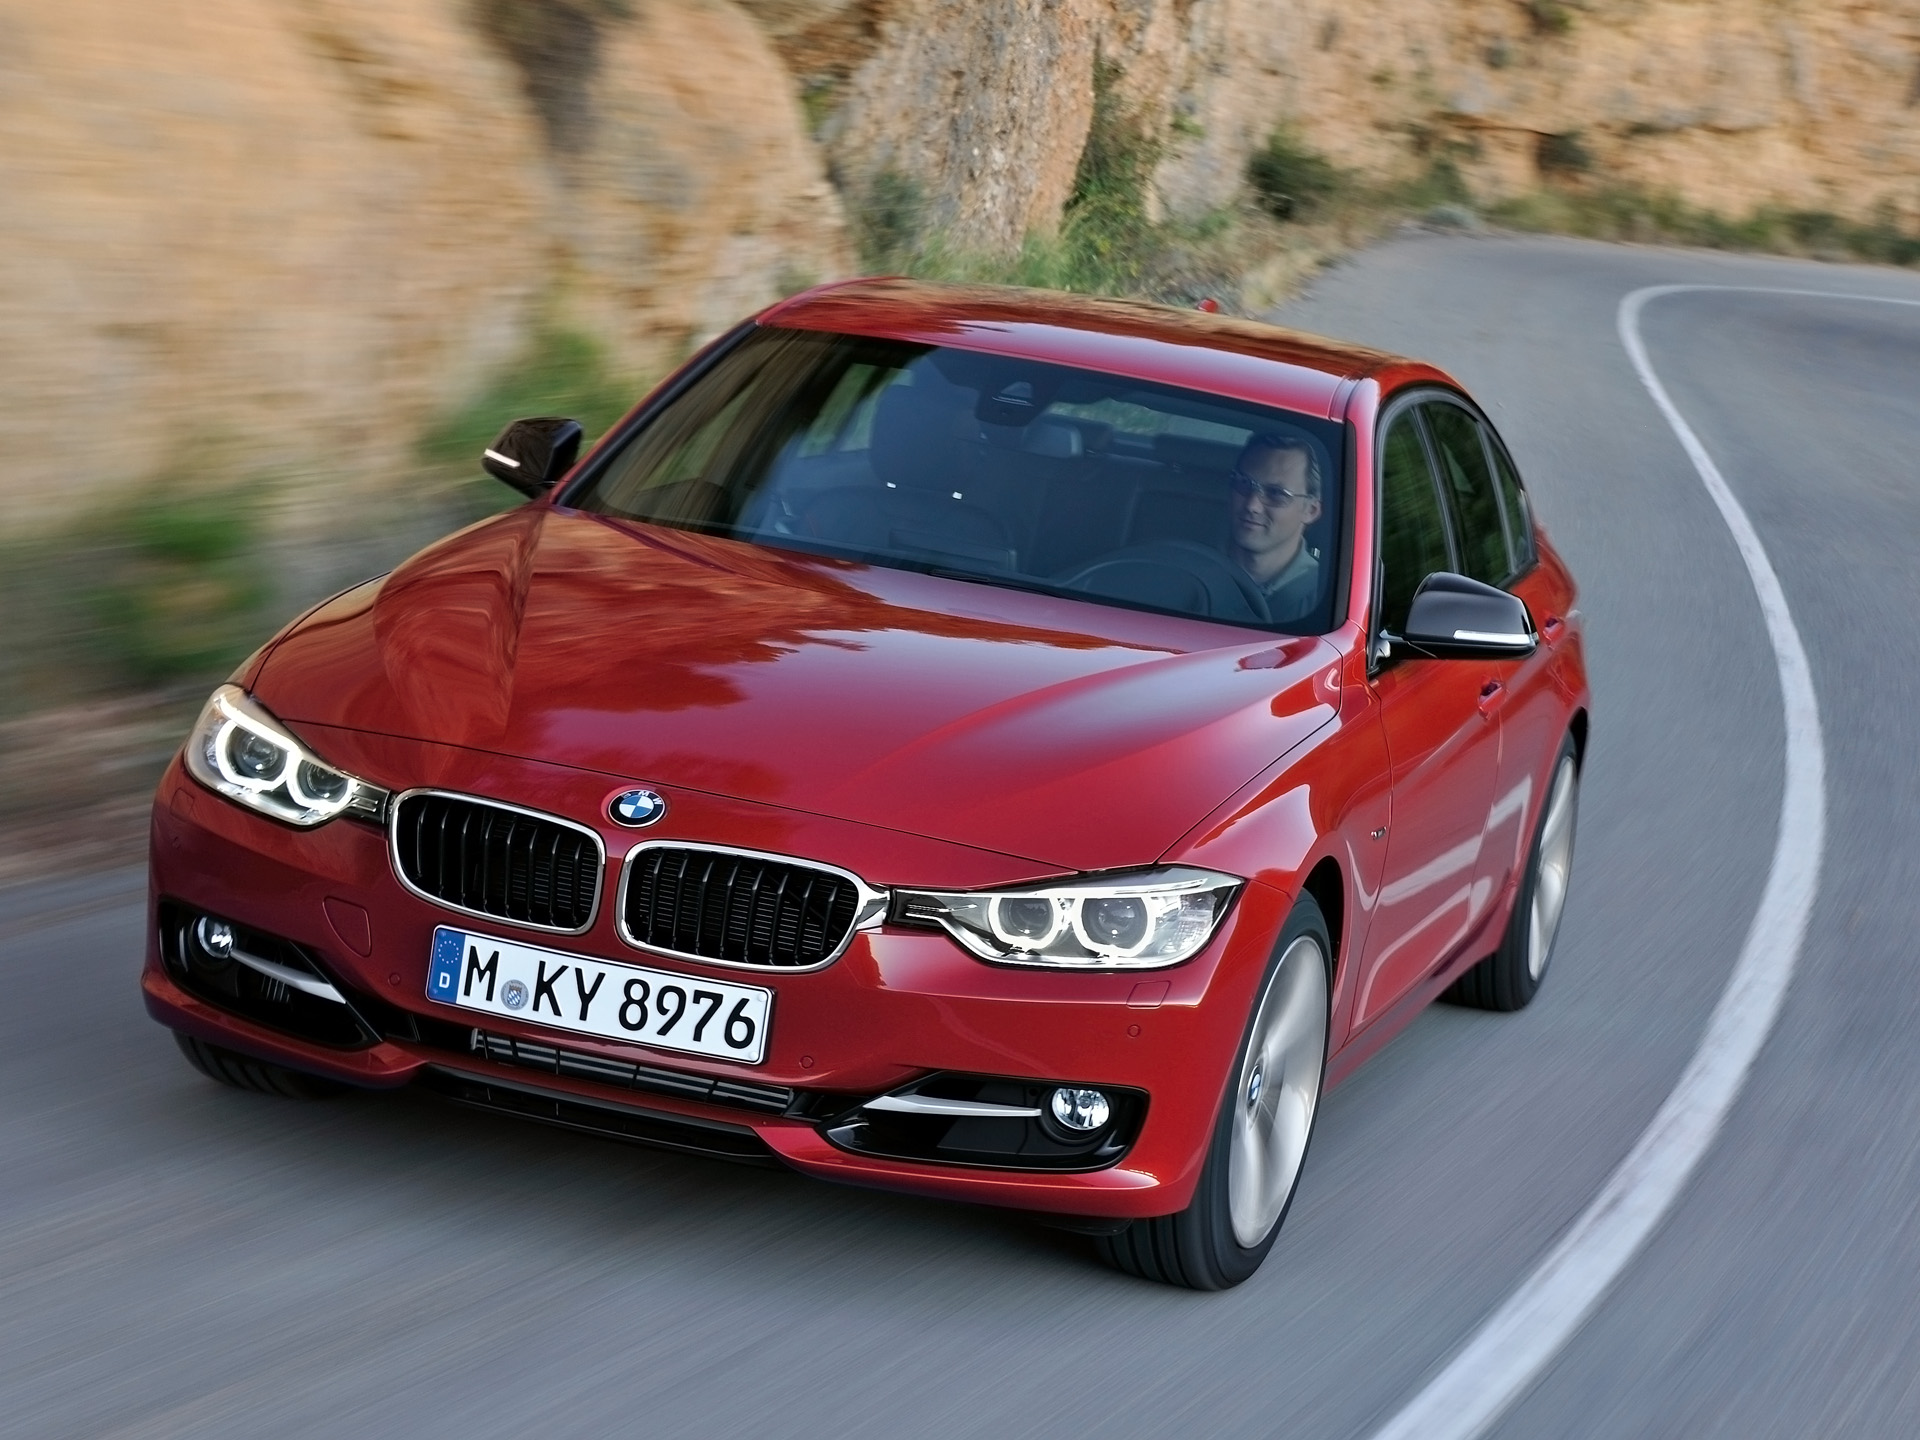 2012 Bmw 3 Series Sedan Sport Line On The Road Wallpapers 2012 Bmw 3 Series Sedan Sport Line